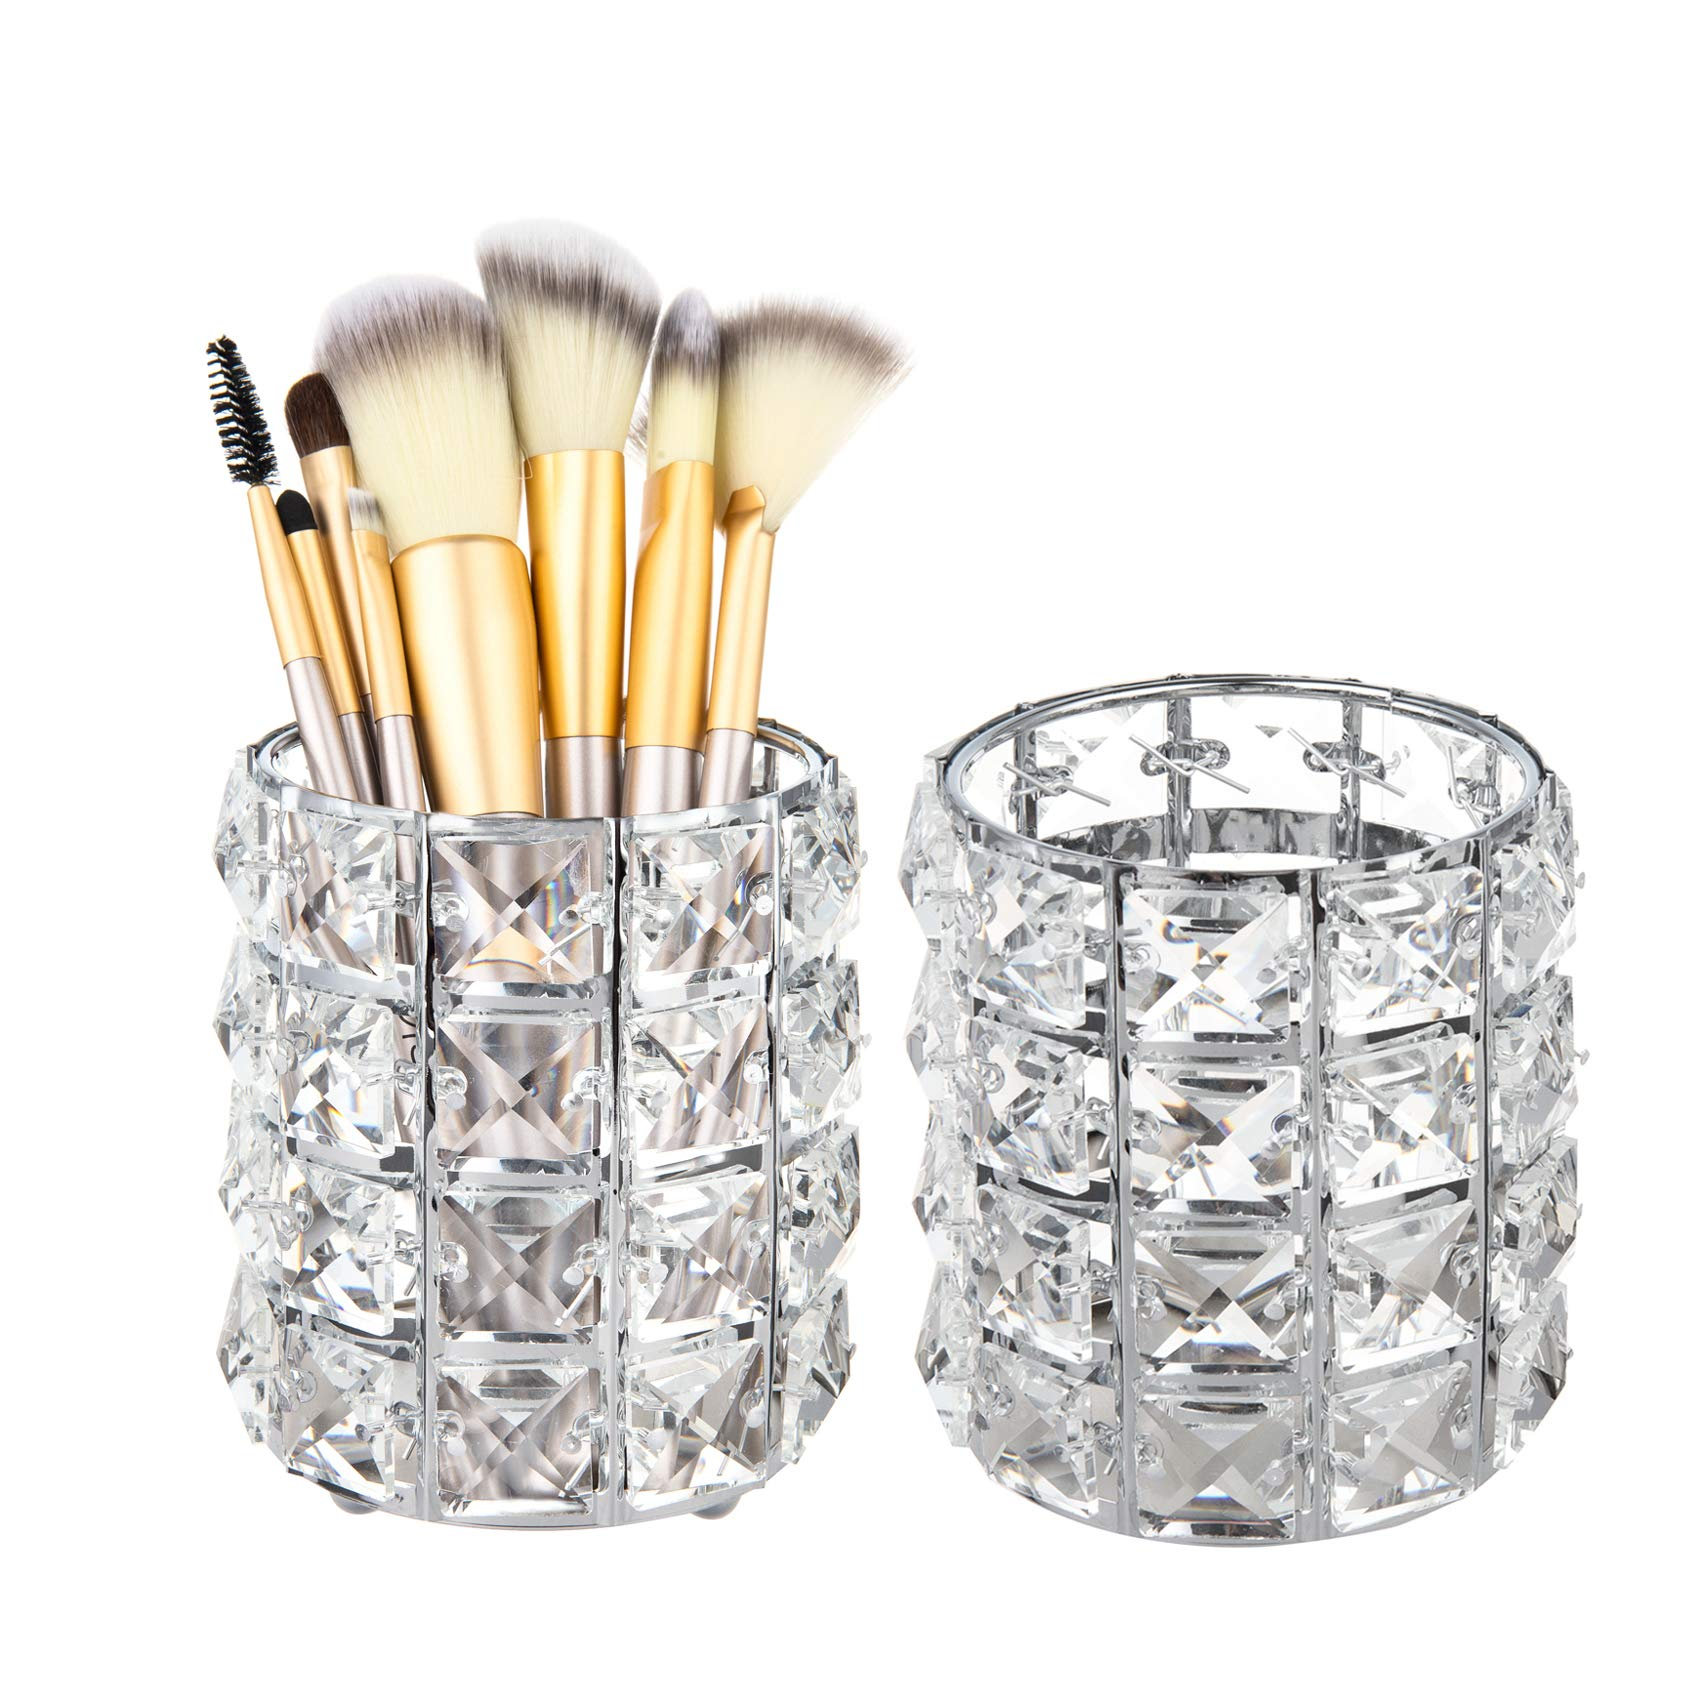 Feyarl 2Pcs Crystal Beads Makeup Brush Holder Bling Cosmetic Tools Organzier Display Case Pen Pencil Holder Cup Pot Vanity Storage Candle Holder Decorative for Bedroom Bathroom Dresser (Silver)